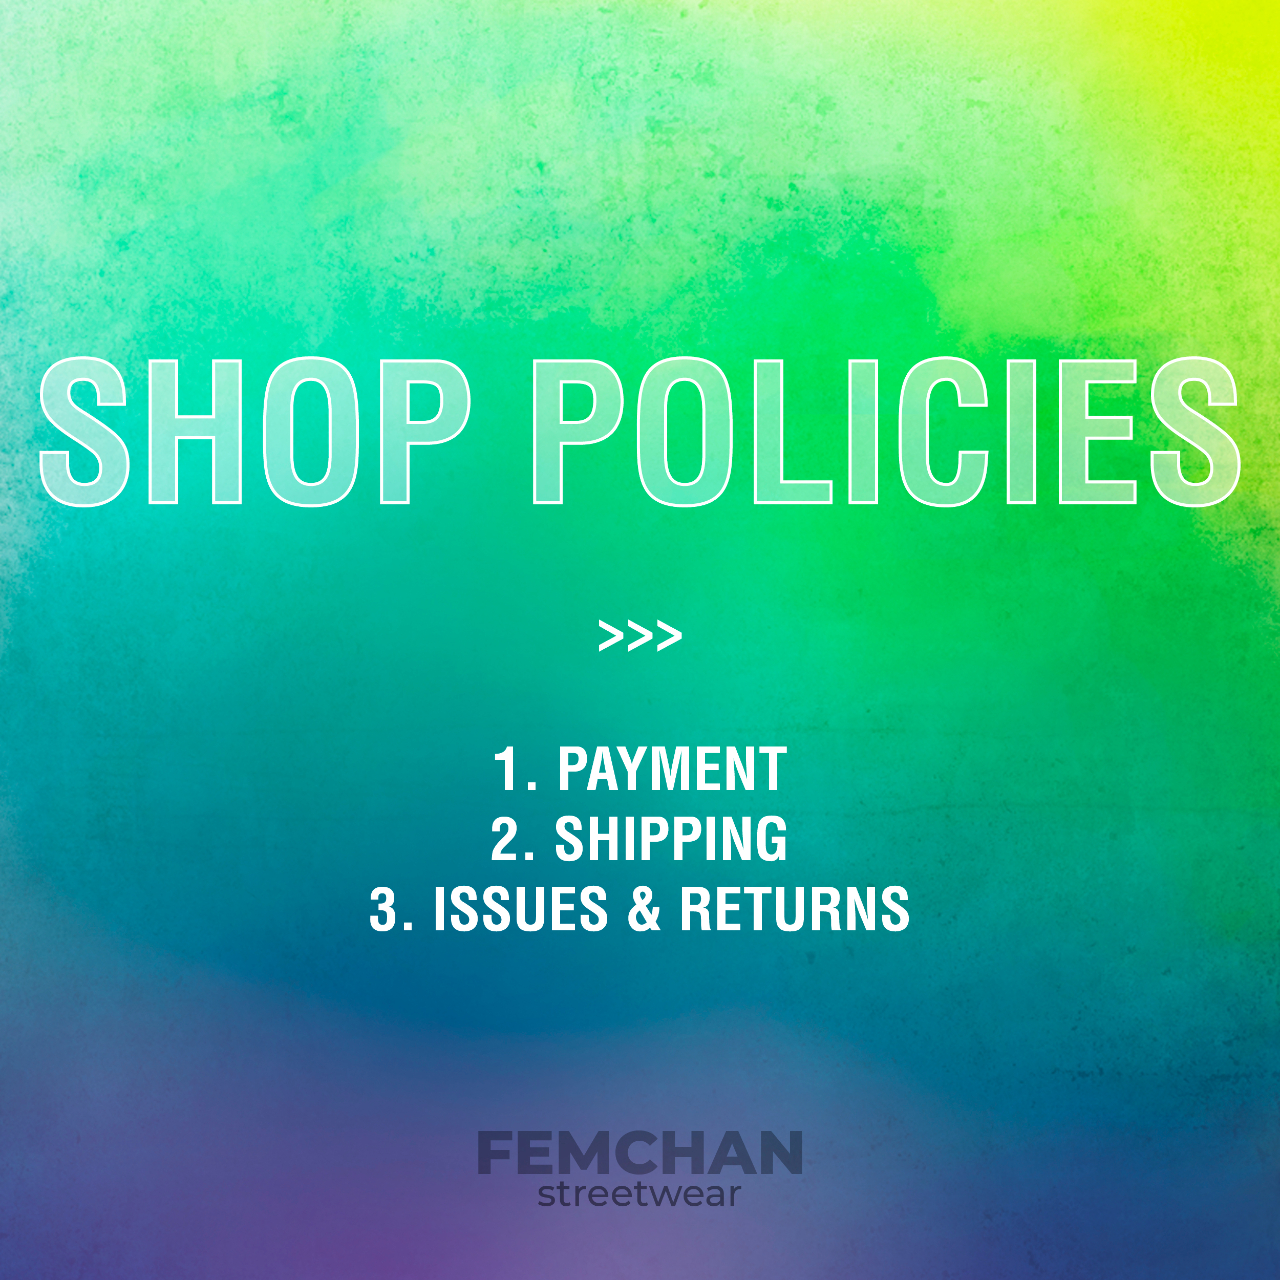 Product Image 1 - ~~ Our Depop shop policies!